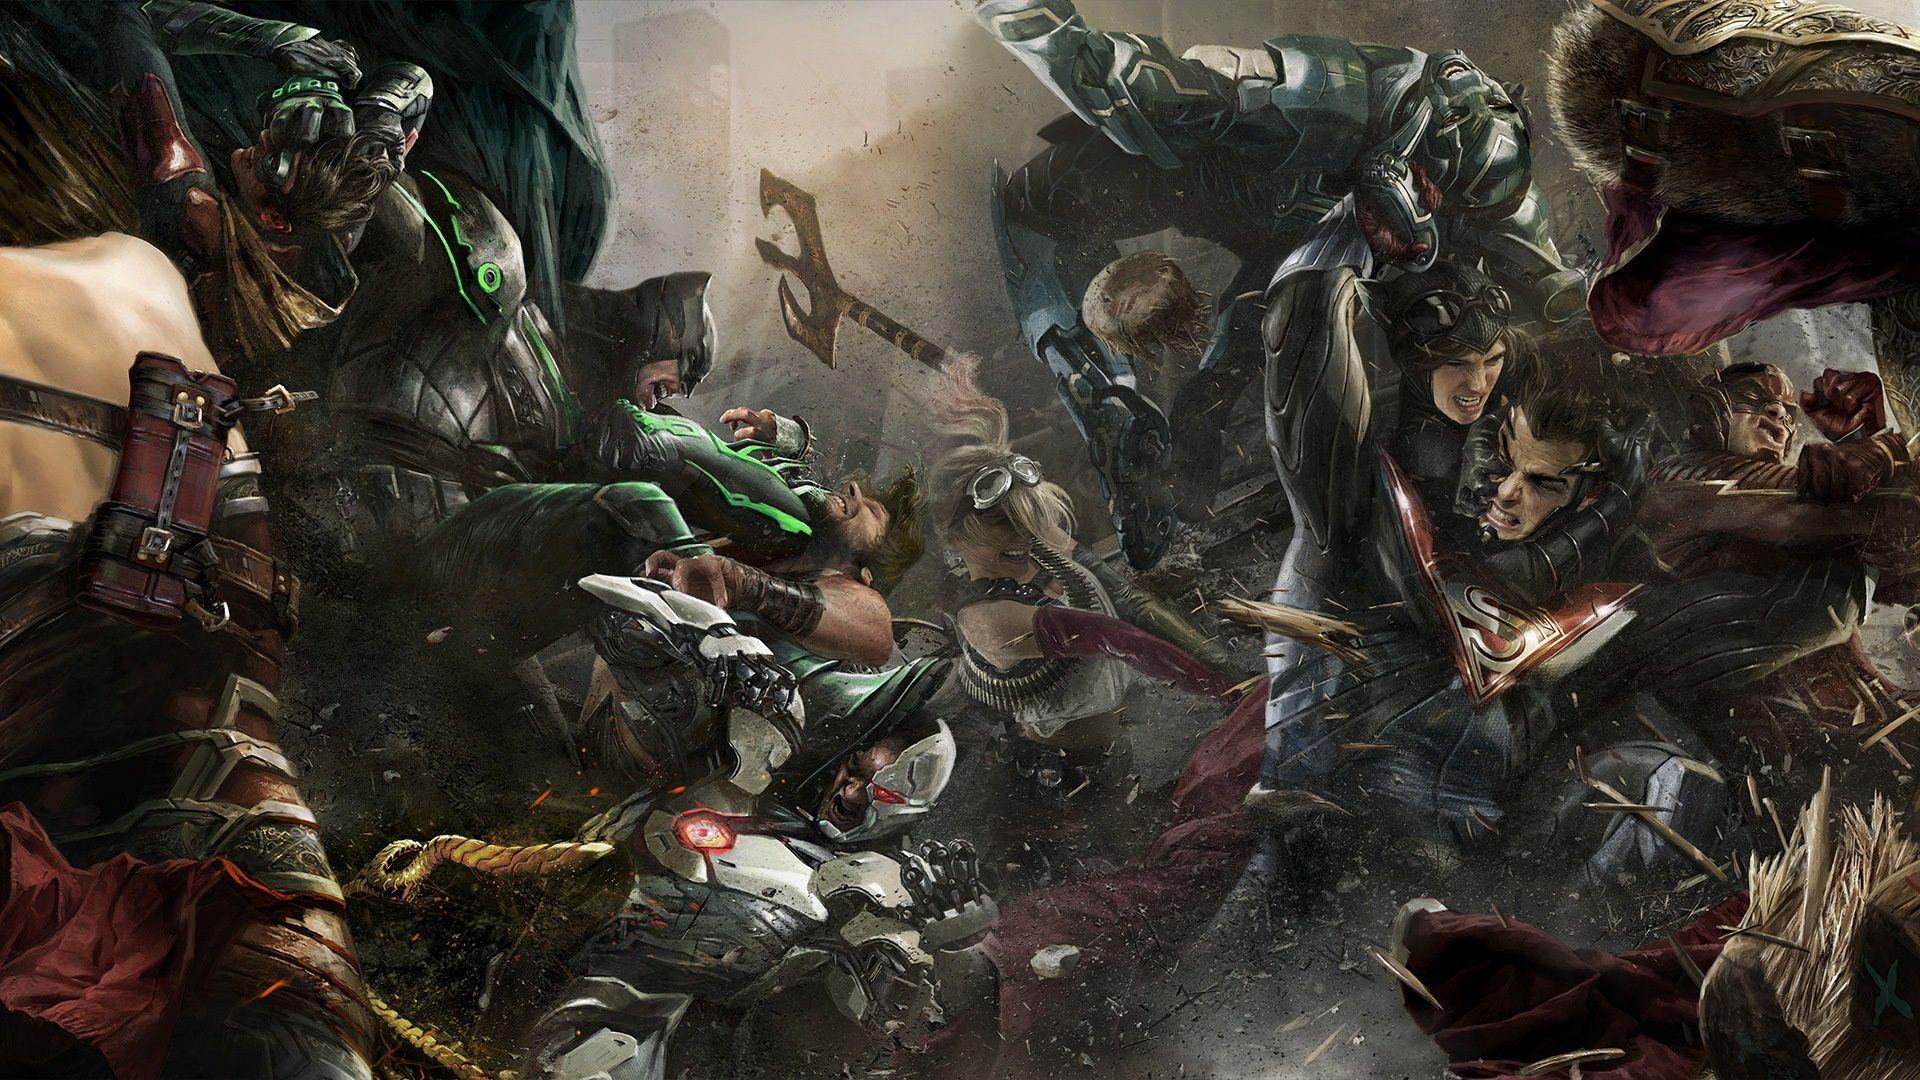 Injustice Wallpapers - Wallpaper Cave